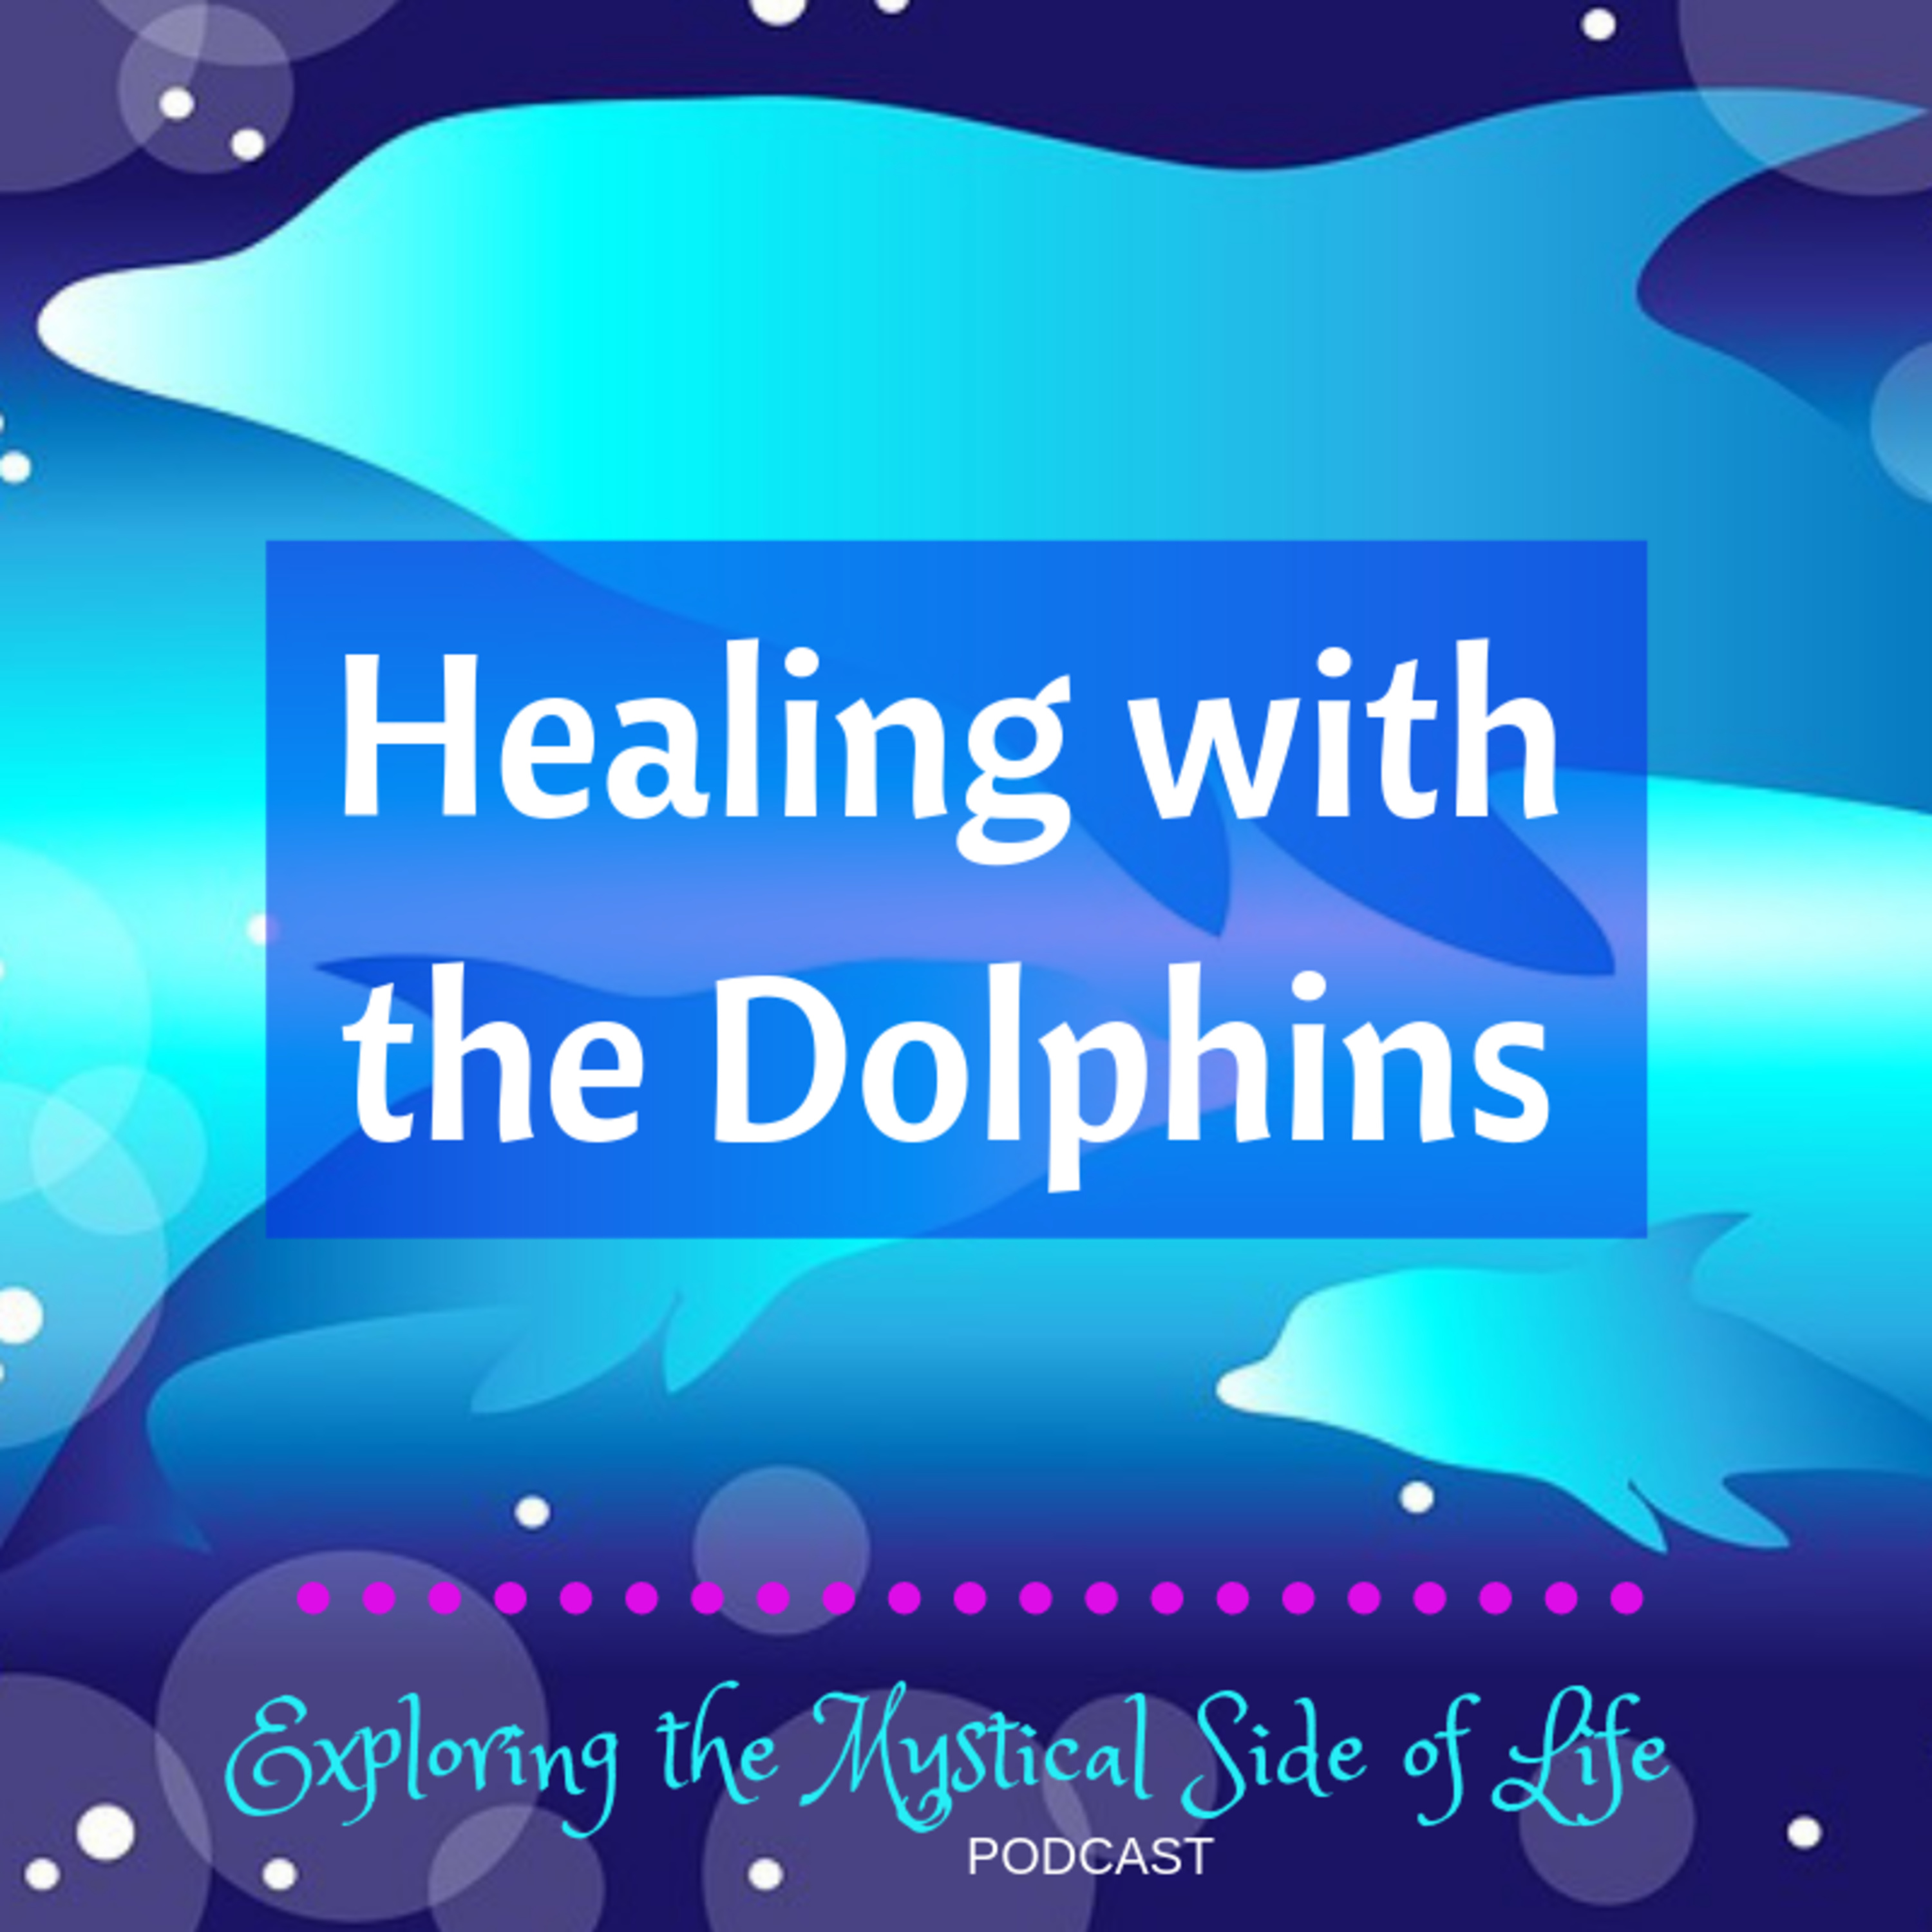 Healing with the Dolphins